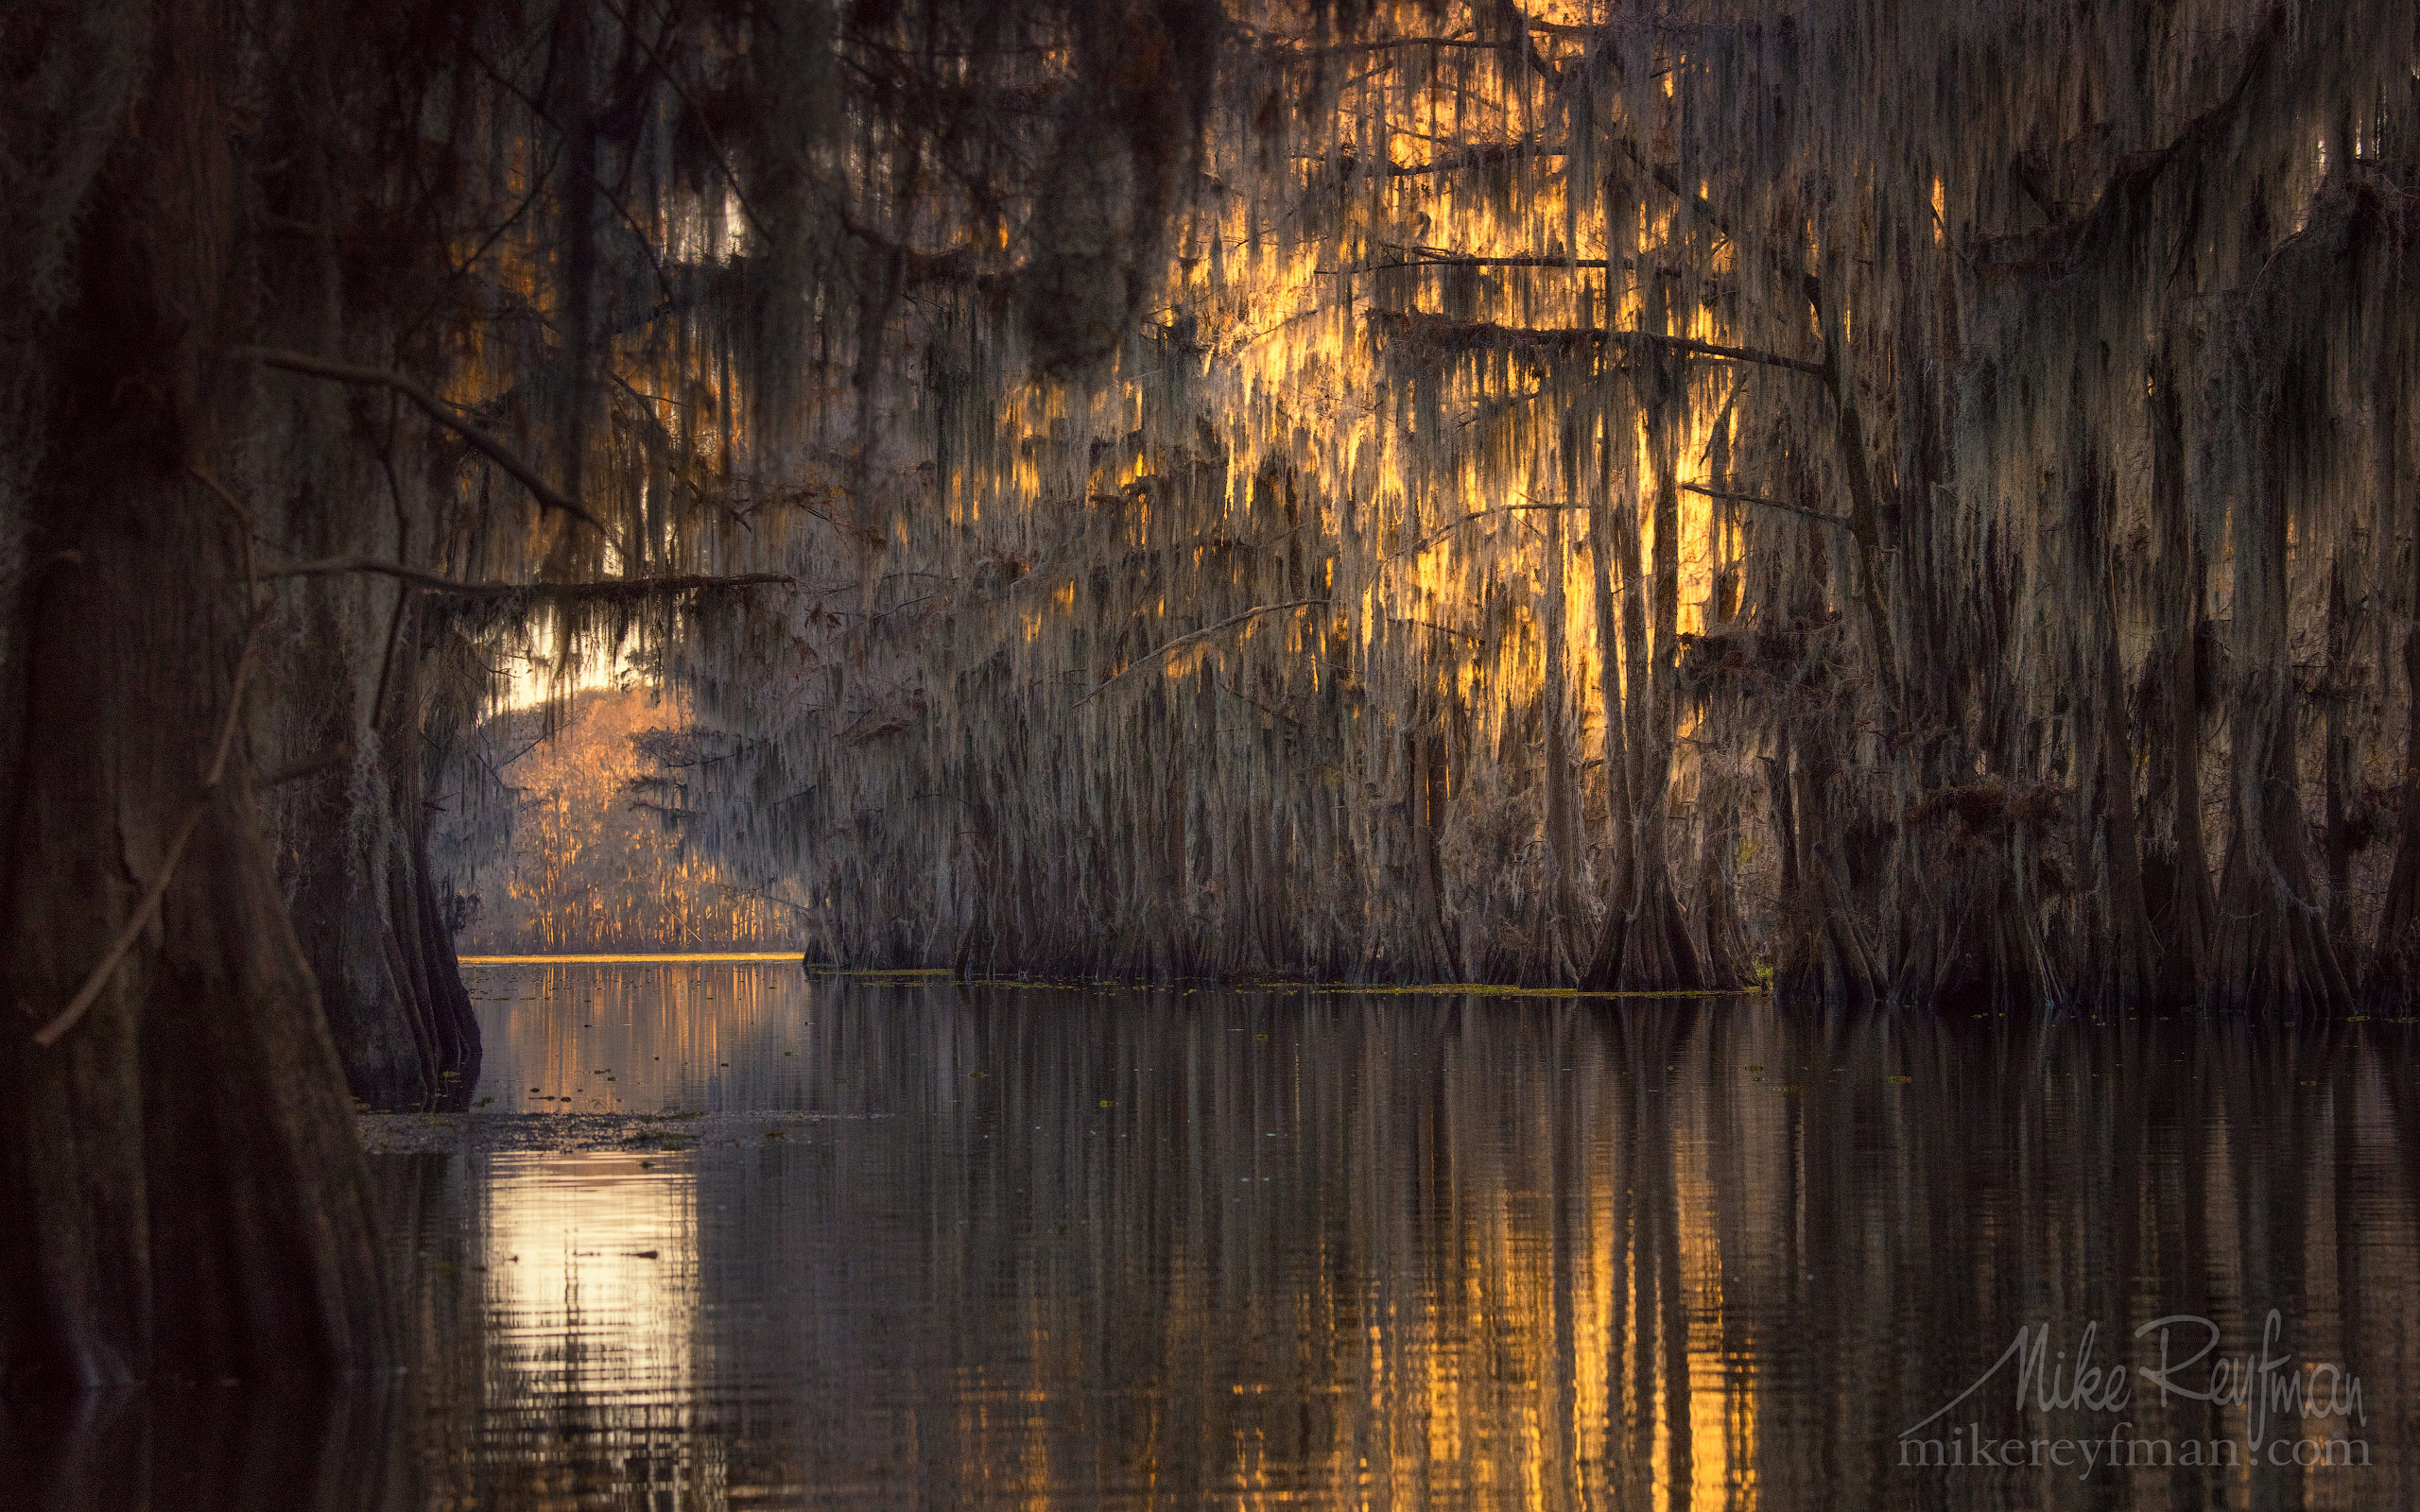 Bald Cypress Trees alley. Government Ditch, Lake Caddo, Texas, US 050-LT1-50A3819.jpg - Bold Cypress and Tupelo Trees in the swamps of Atchafalaya River Basin. Caddo, Martin and Fousse Lakes. Texas/Louisiana, USA. - Mike Reyfman Photography